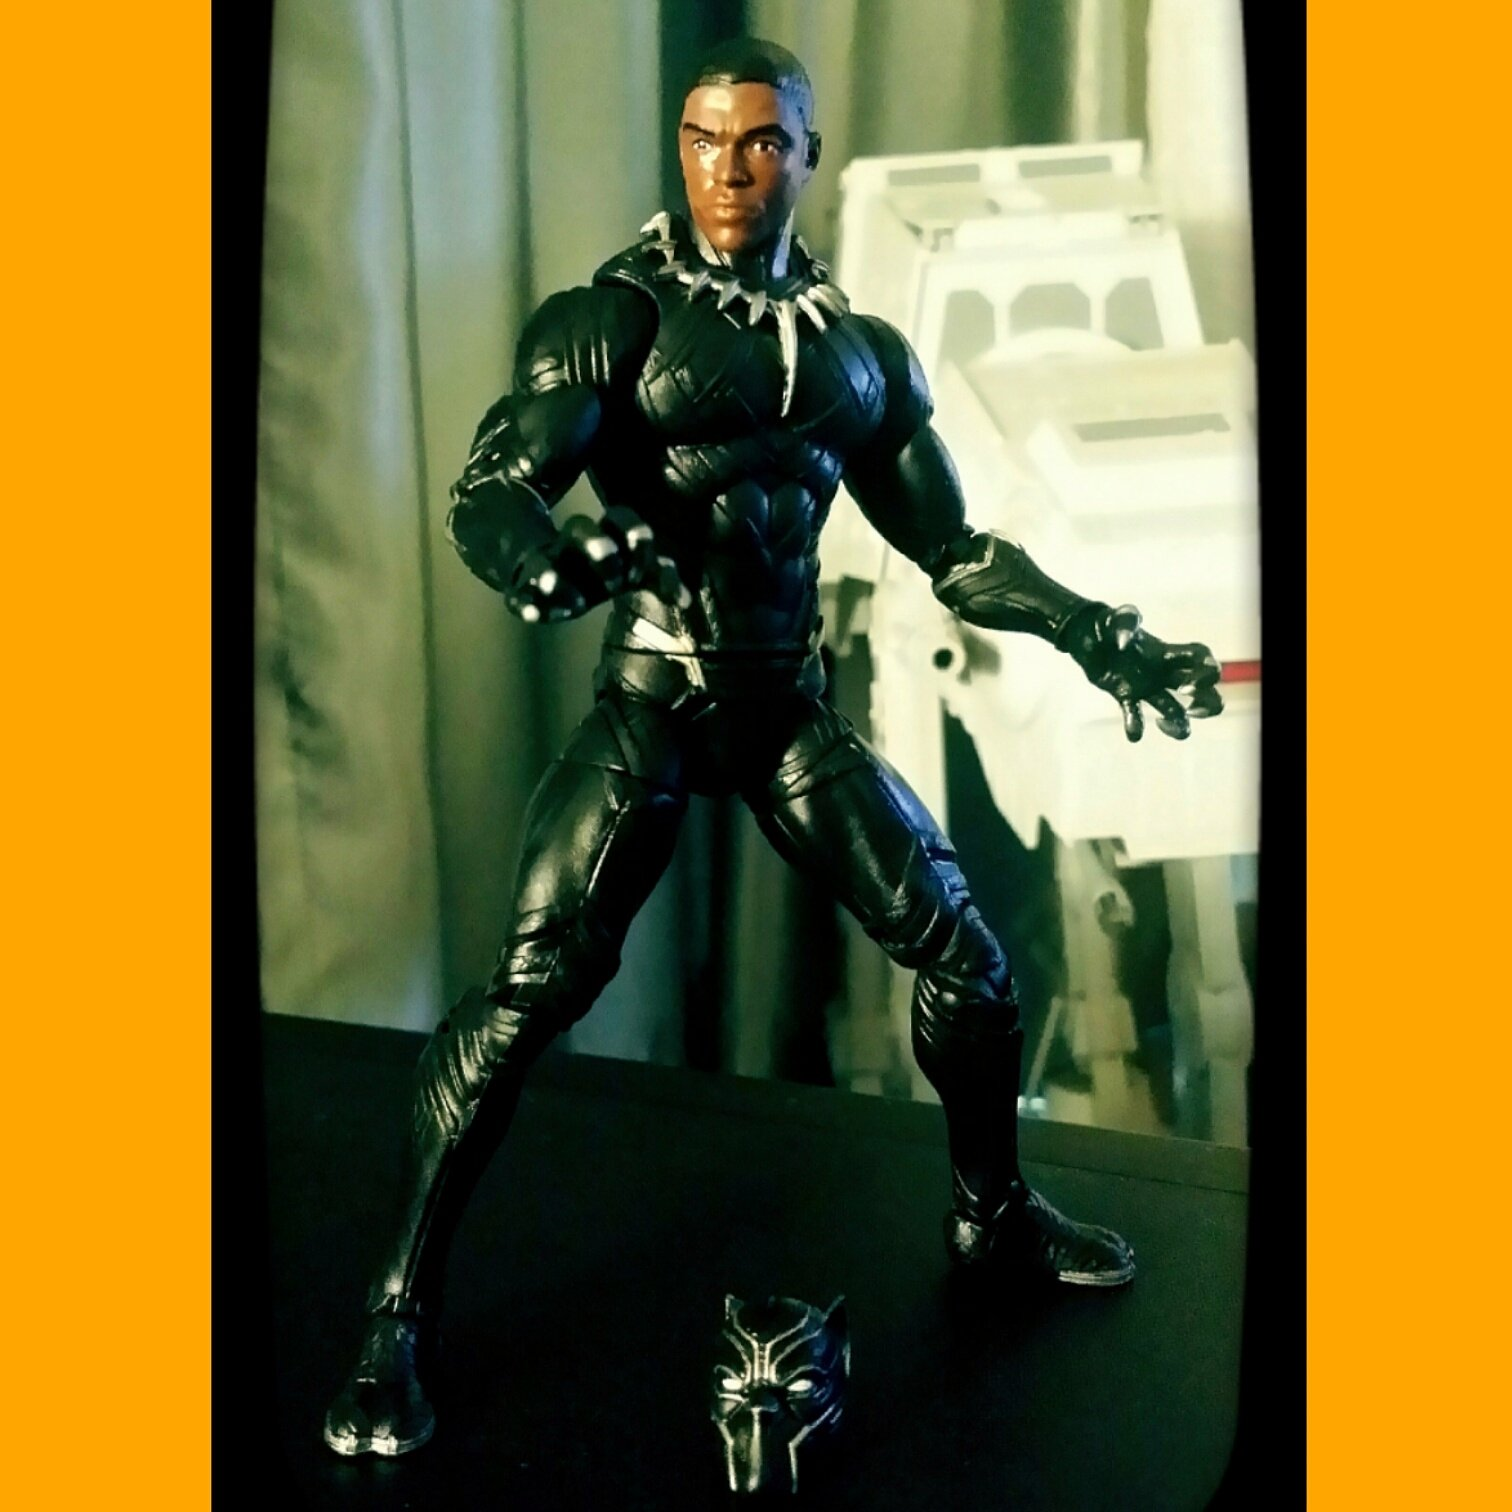 Only my THIRD #marvellegends #blackpanther #sixinchscale #actionfigure in my collection. Do I even need another one then? ....#heckyeah ...this movie version rocks! The headsculpt is pretty awesome too. #hasbro #avengers #captainamericacivilwar #movie